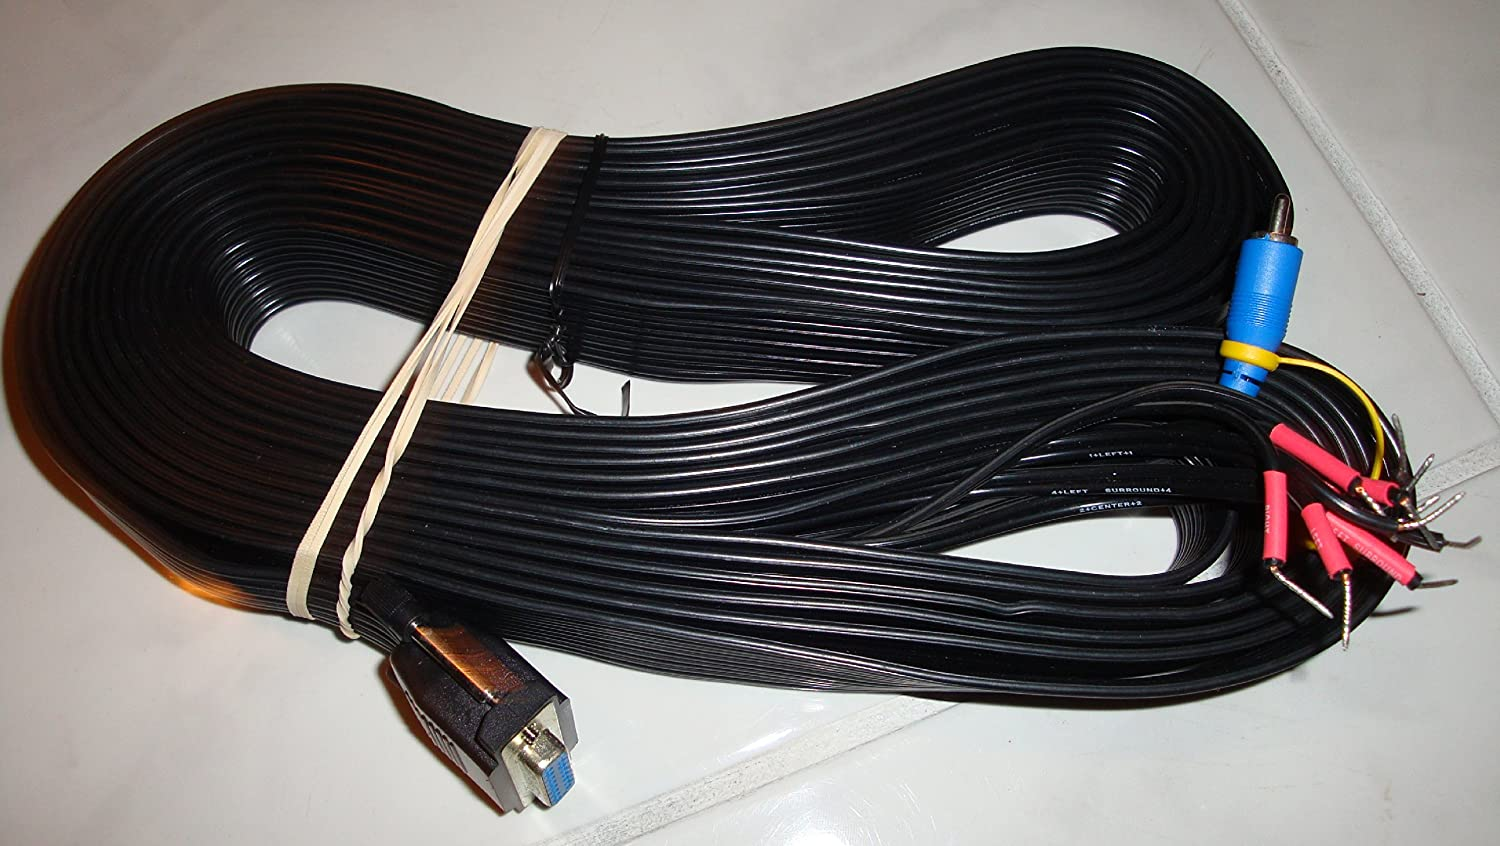 91VP4Uej%2BCL._SL1500_ amazon com bose audio cable 15 pin from subwoofer to receiver  at n-0.co